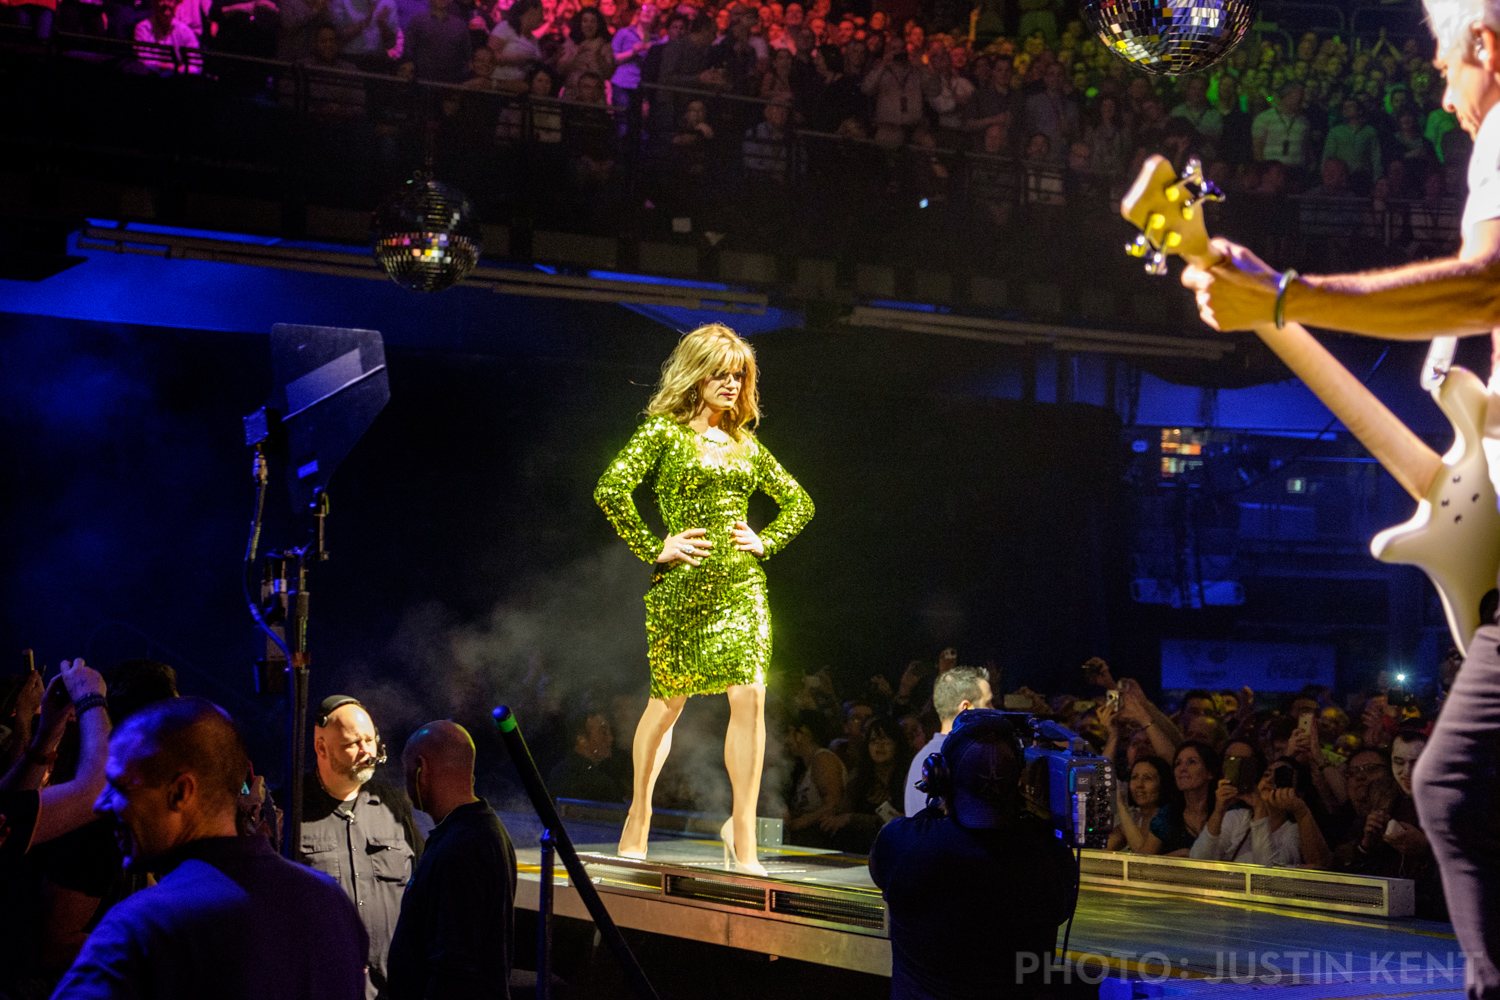 Introducing Dr. Panti Bliss, Irish marriage equality advocate